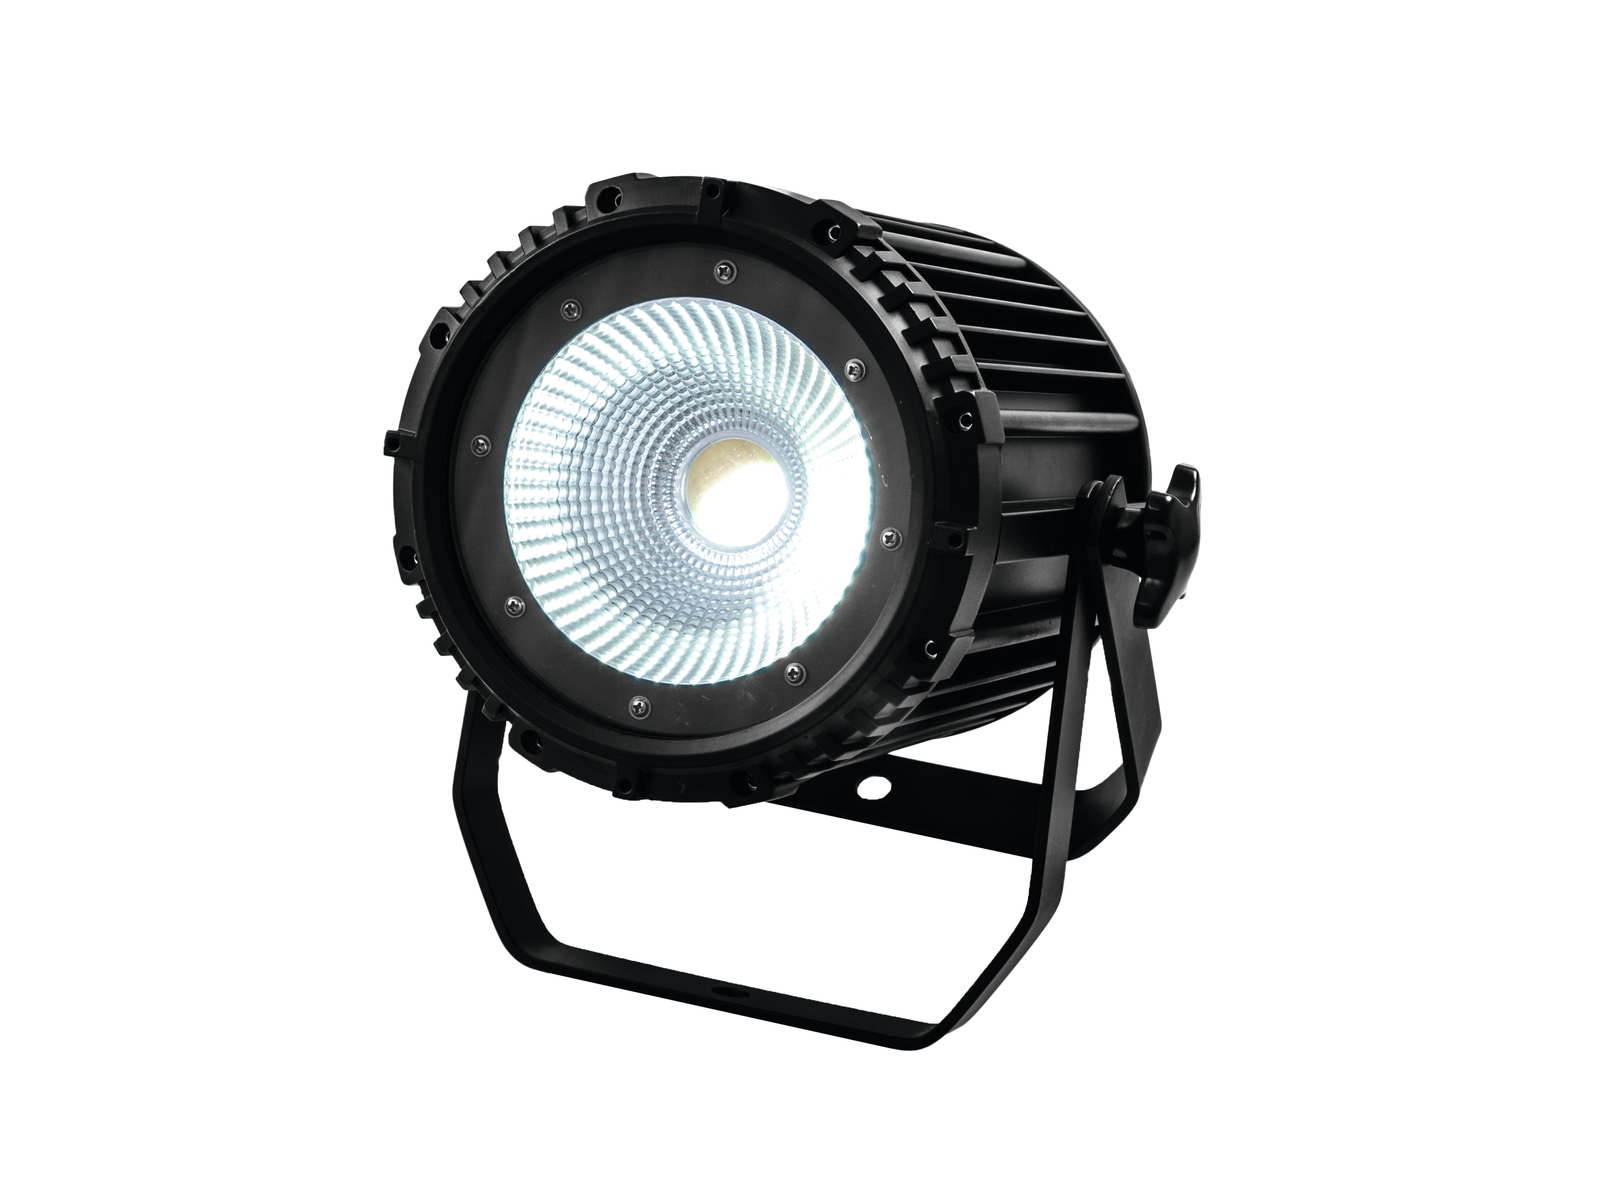 EUROLITE LED SFR-100 COB CW/WW 100W Piano